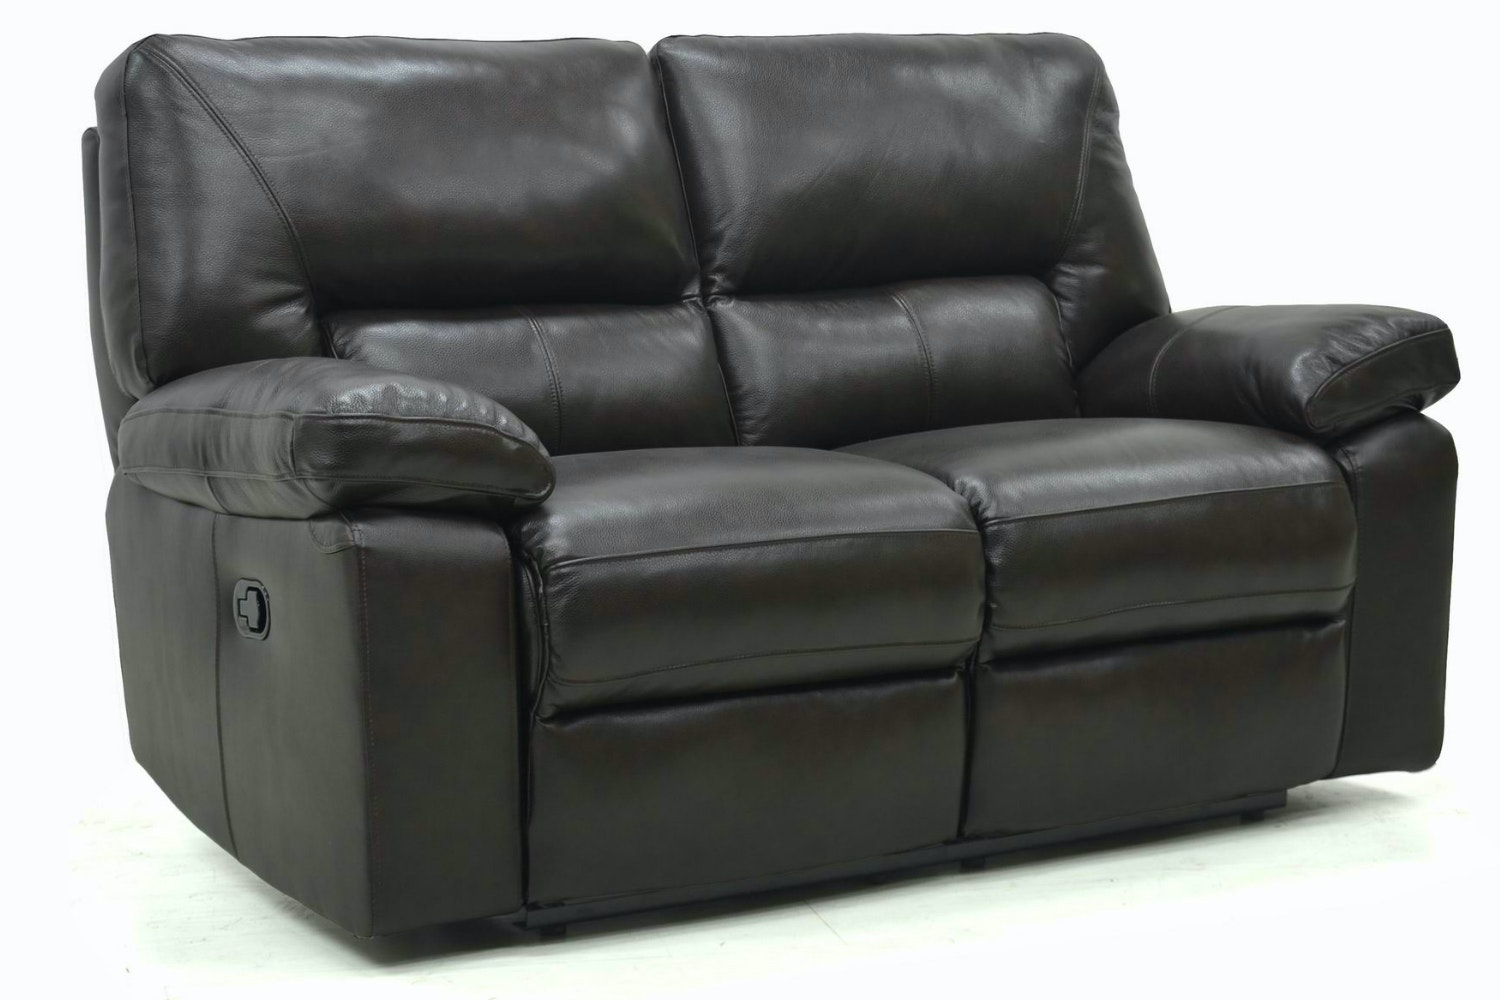 Cala 2-Seater Leather Recliner Sofa